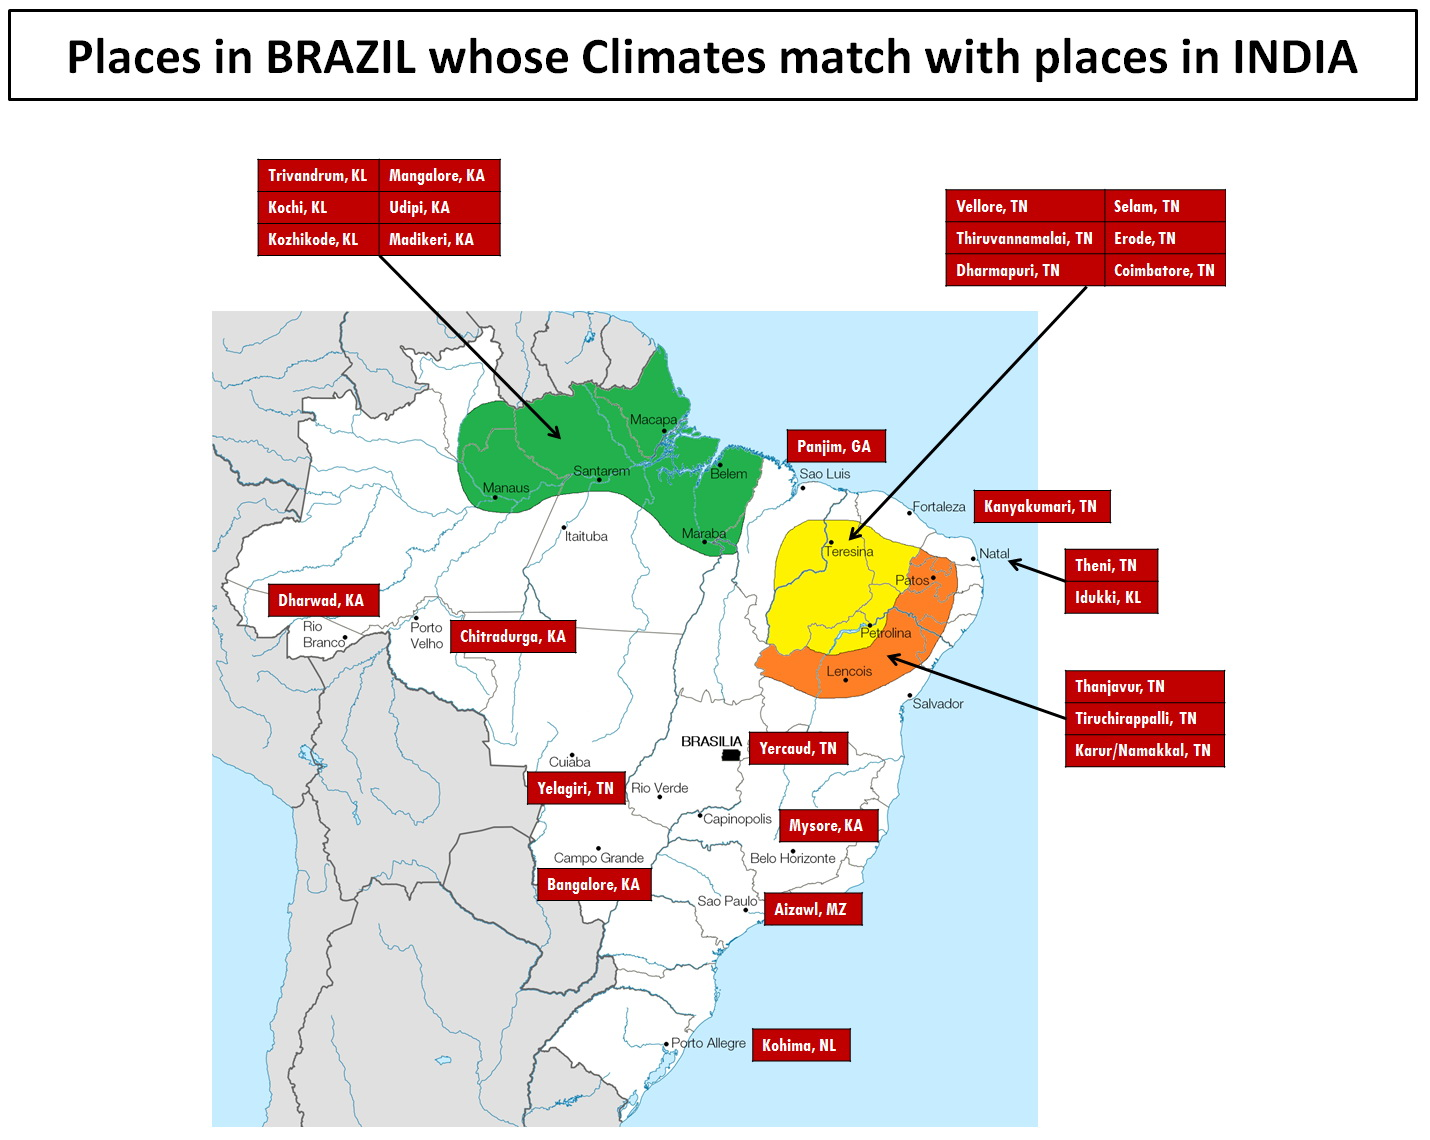 Places in Brazil whose climates match with places in India